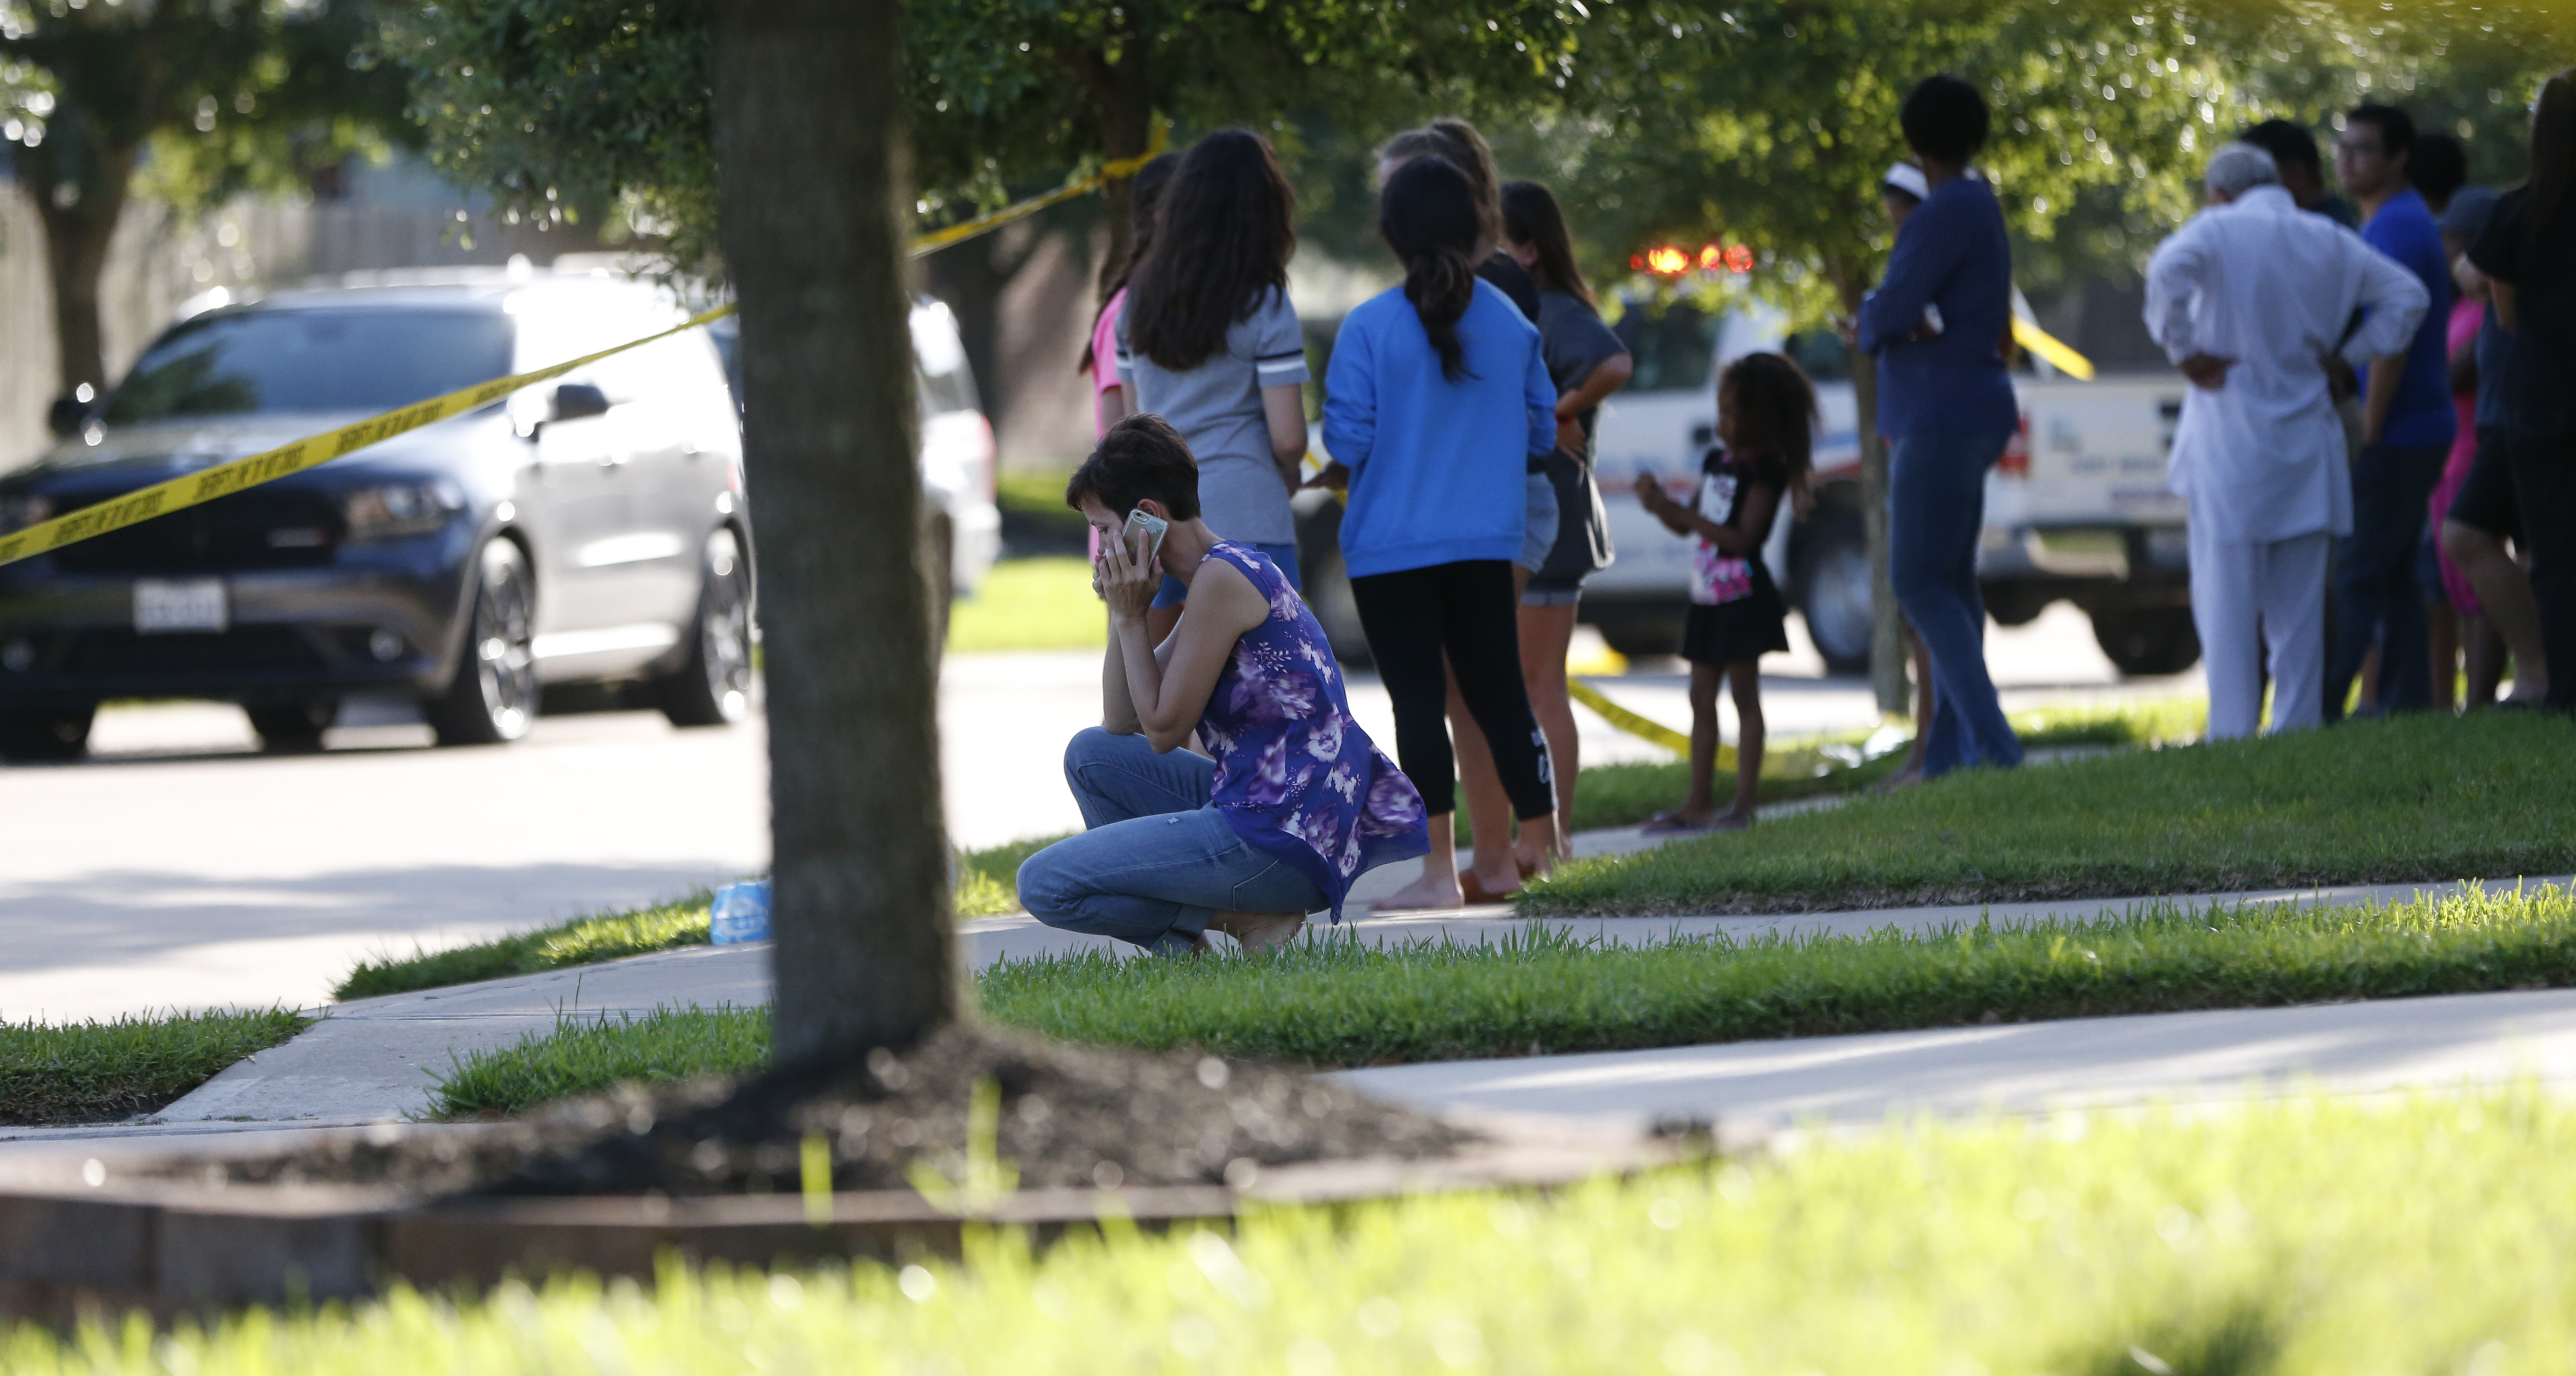 Neighbors gather to watch as Fort Bend County Sheriffs department investigates a shooting in Katy, Texas on June 24, 2016.